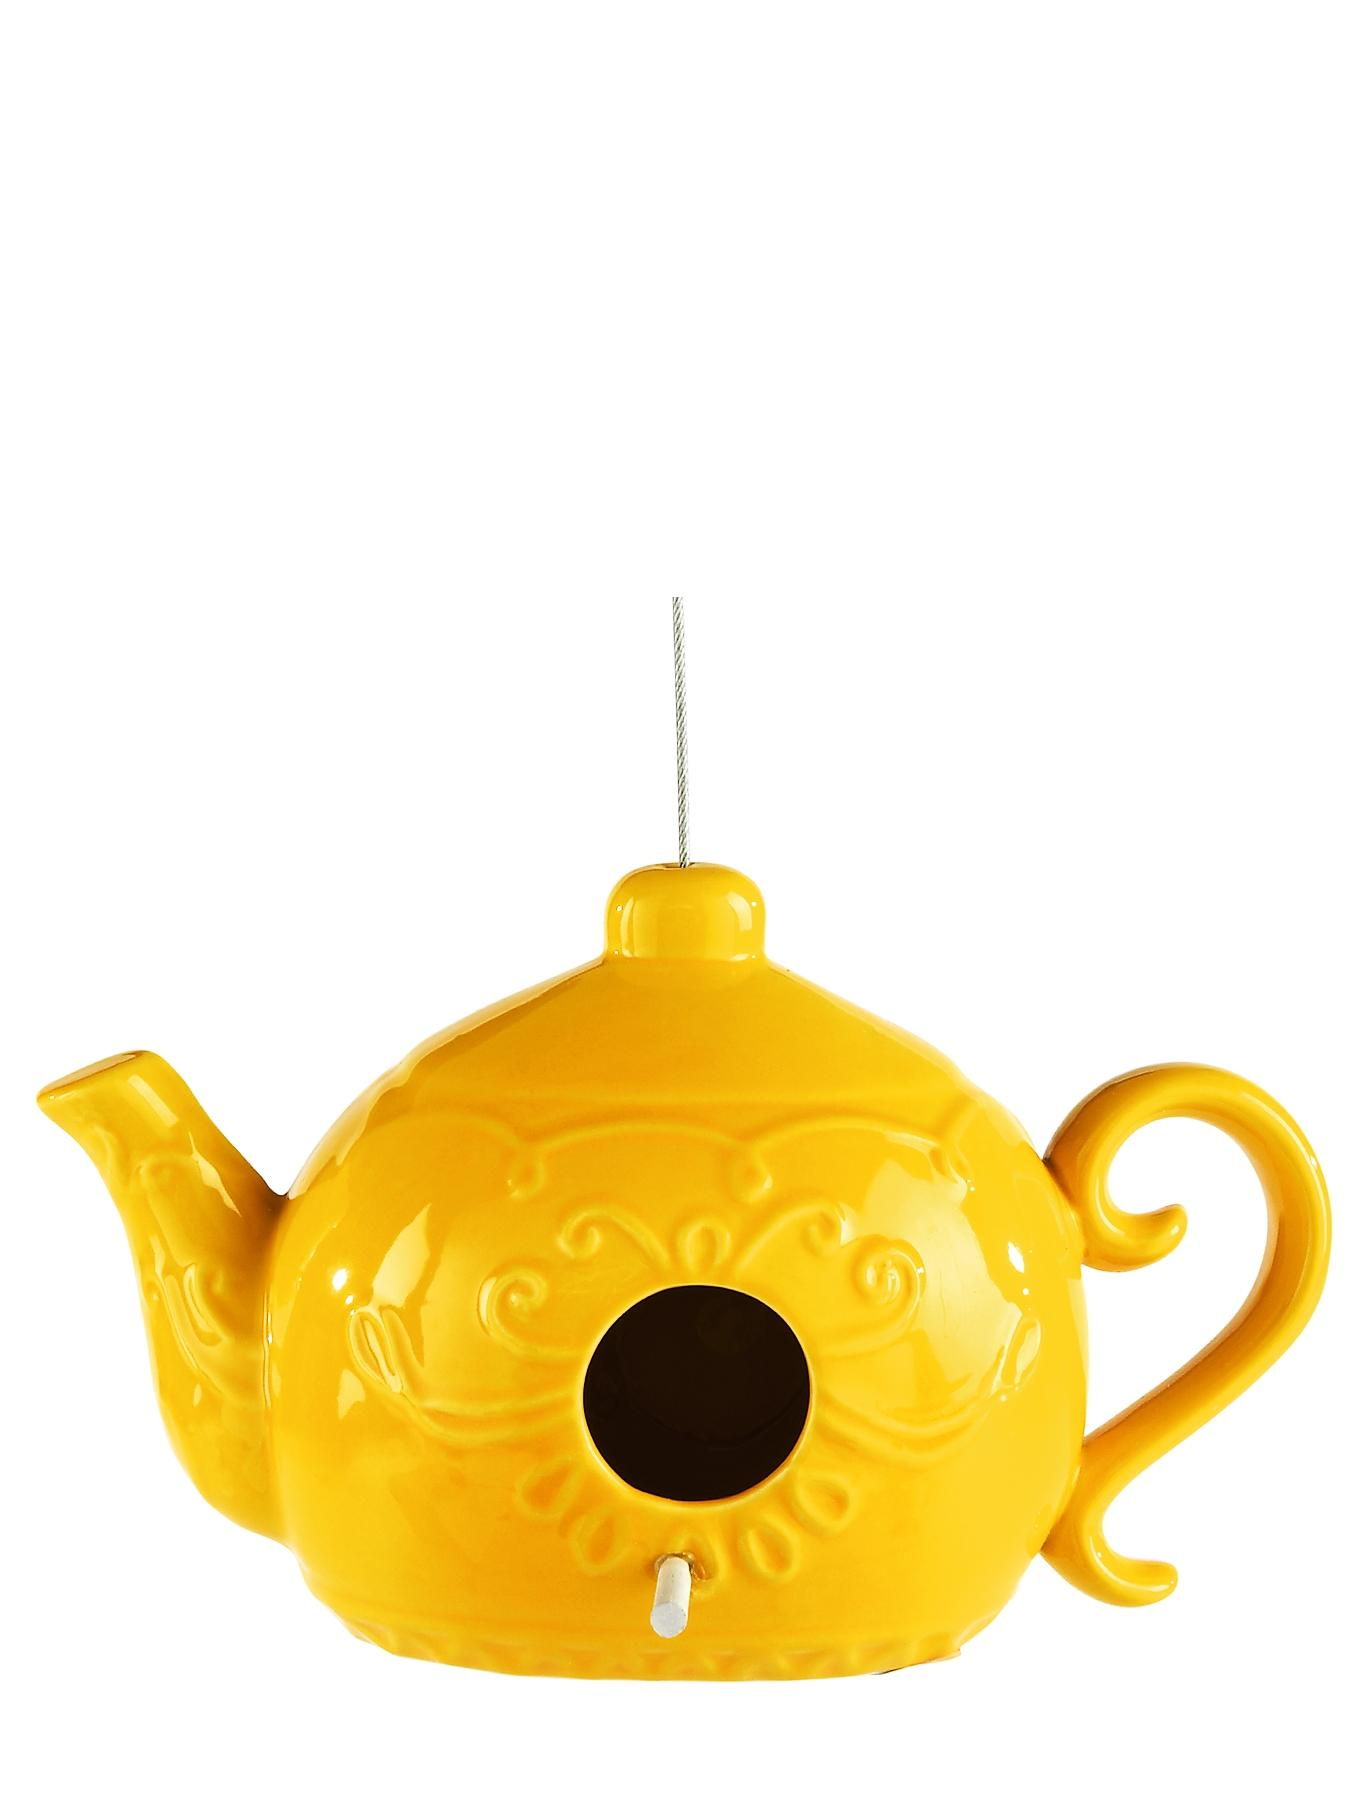 Ceramic Teapot Birdhouse - Yellow